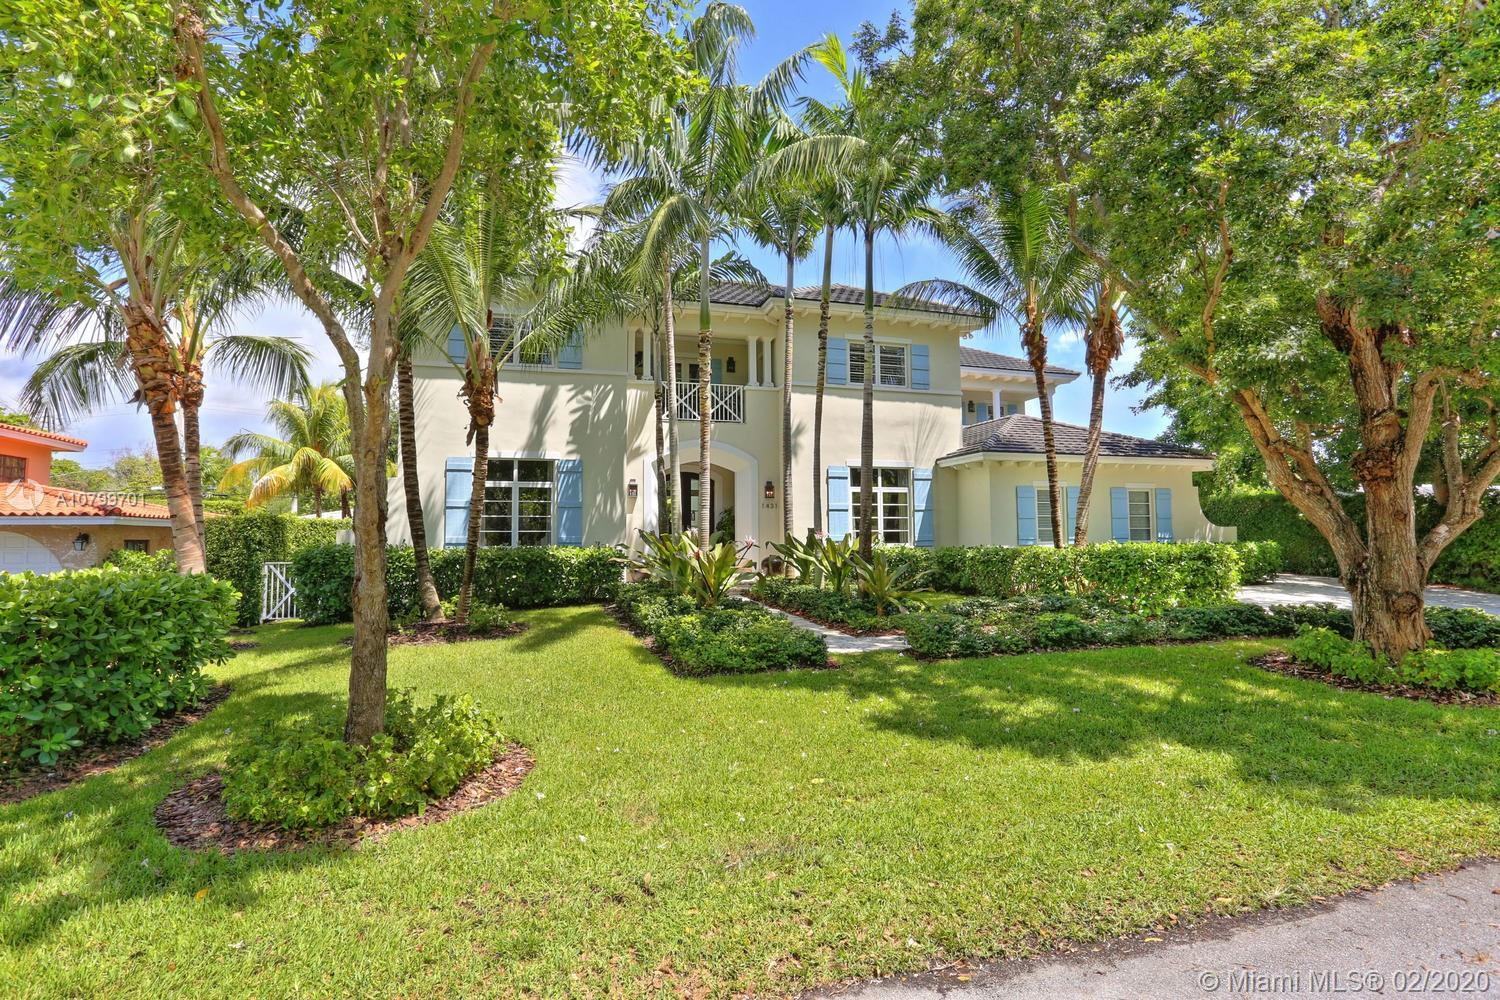 Beautiful Island Style home in Gables by the Sea on a quiet cul-de-sac. Gated community. Approximately 6100 sq ft of total area and approximately 5000 sq. ft adjusted. Built in 2007-2008 and only lived in by one owner. Three houses down from park. 5 bedrooms and 5.5 baths and 2 car garage. Incredible kitchen with high end finishes, island and Thermador appliances. Outside BBQ and pool. High ceilings and every bedroom on second floor has its own balcony. All bedrooms have their own bathroom. Stunning features. Rented.